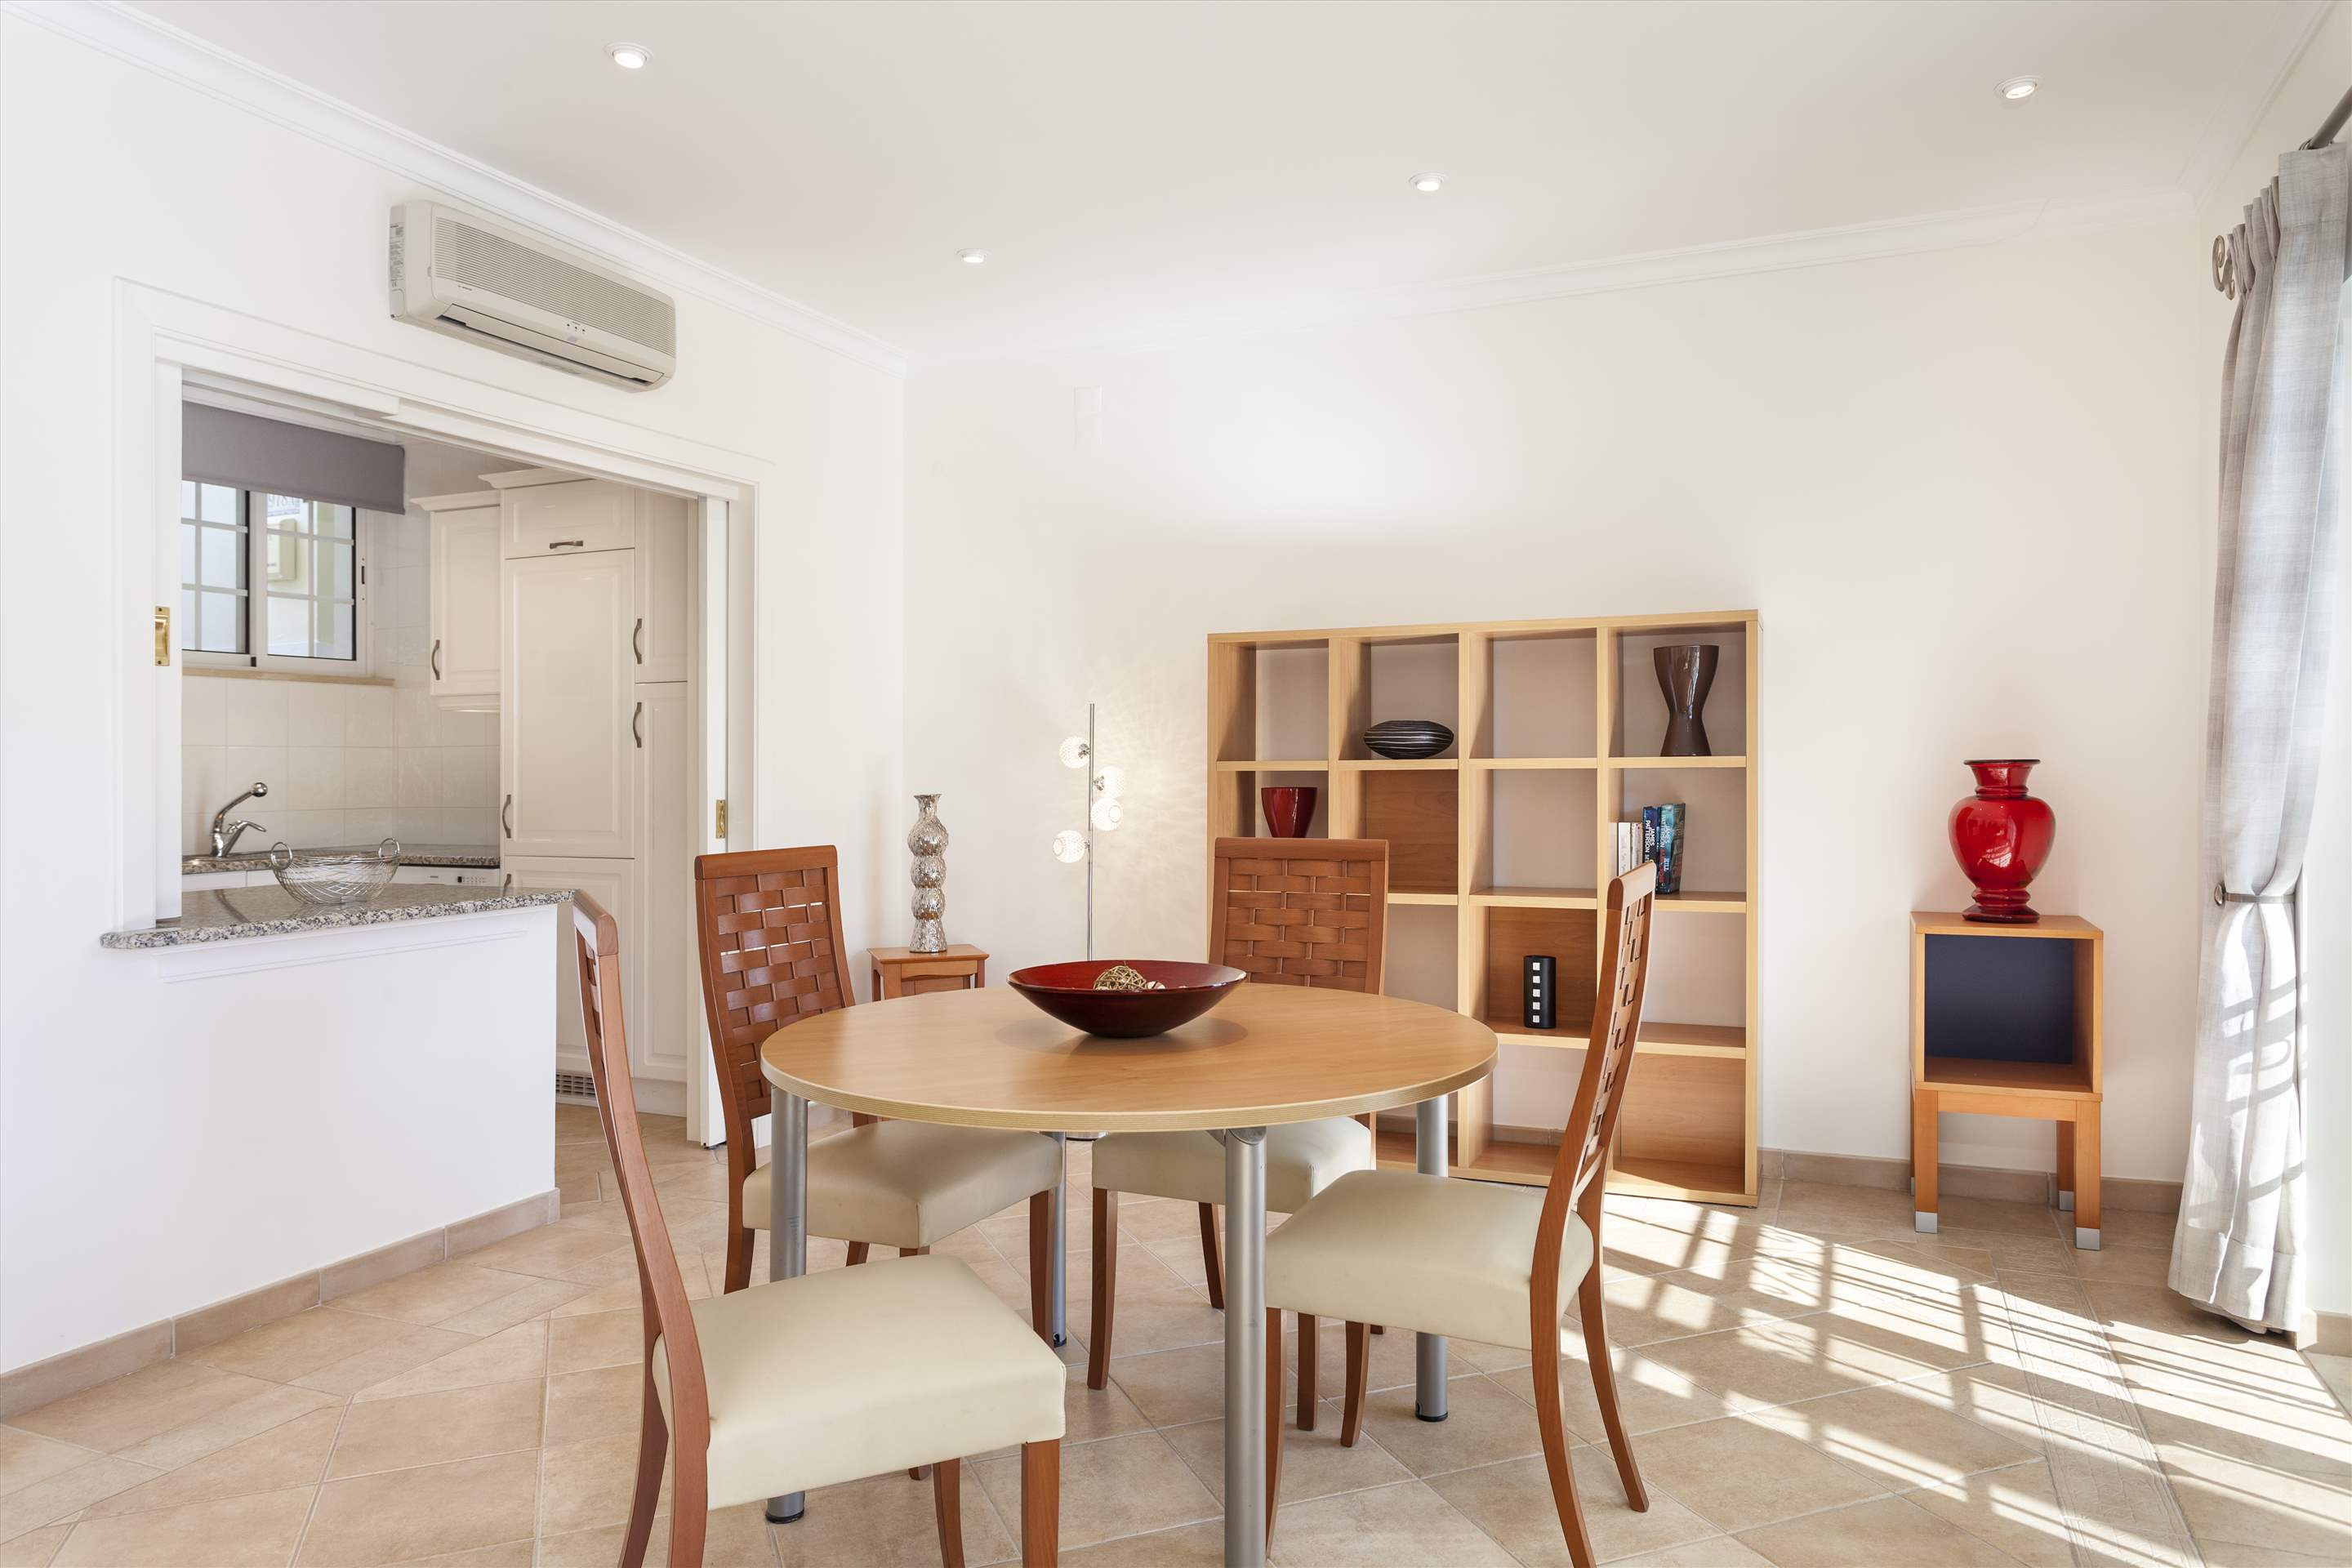 Apartment Dorothea, 1 bedroom apartment in Vale do Lobo, Algarve Photo #5